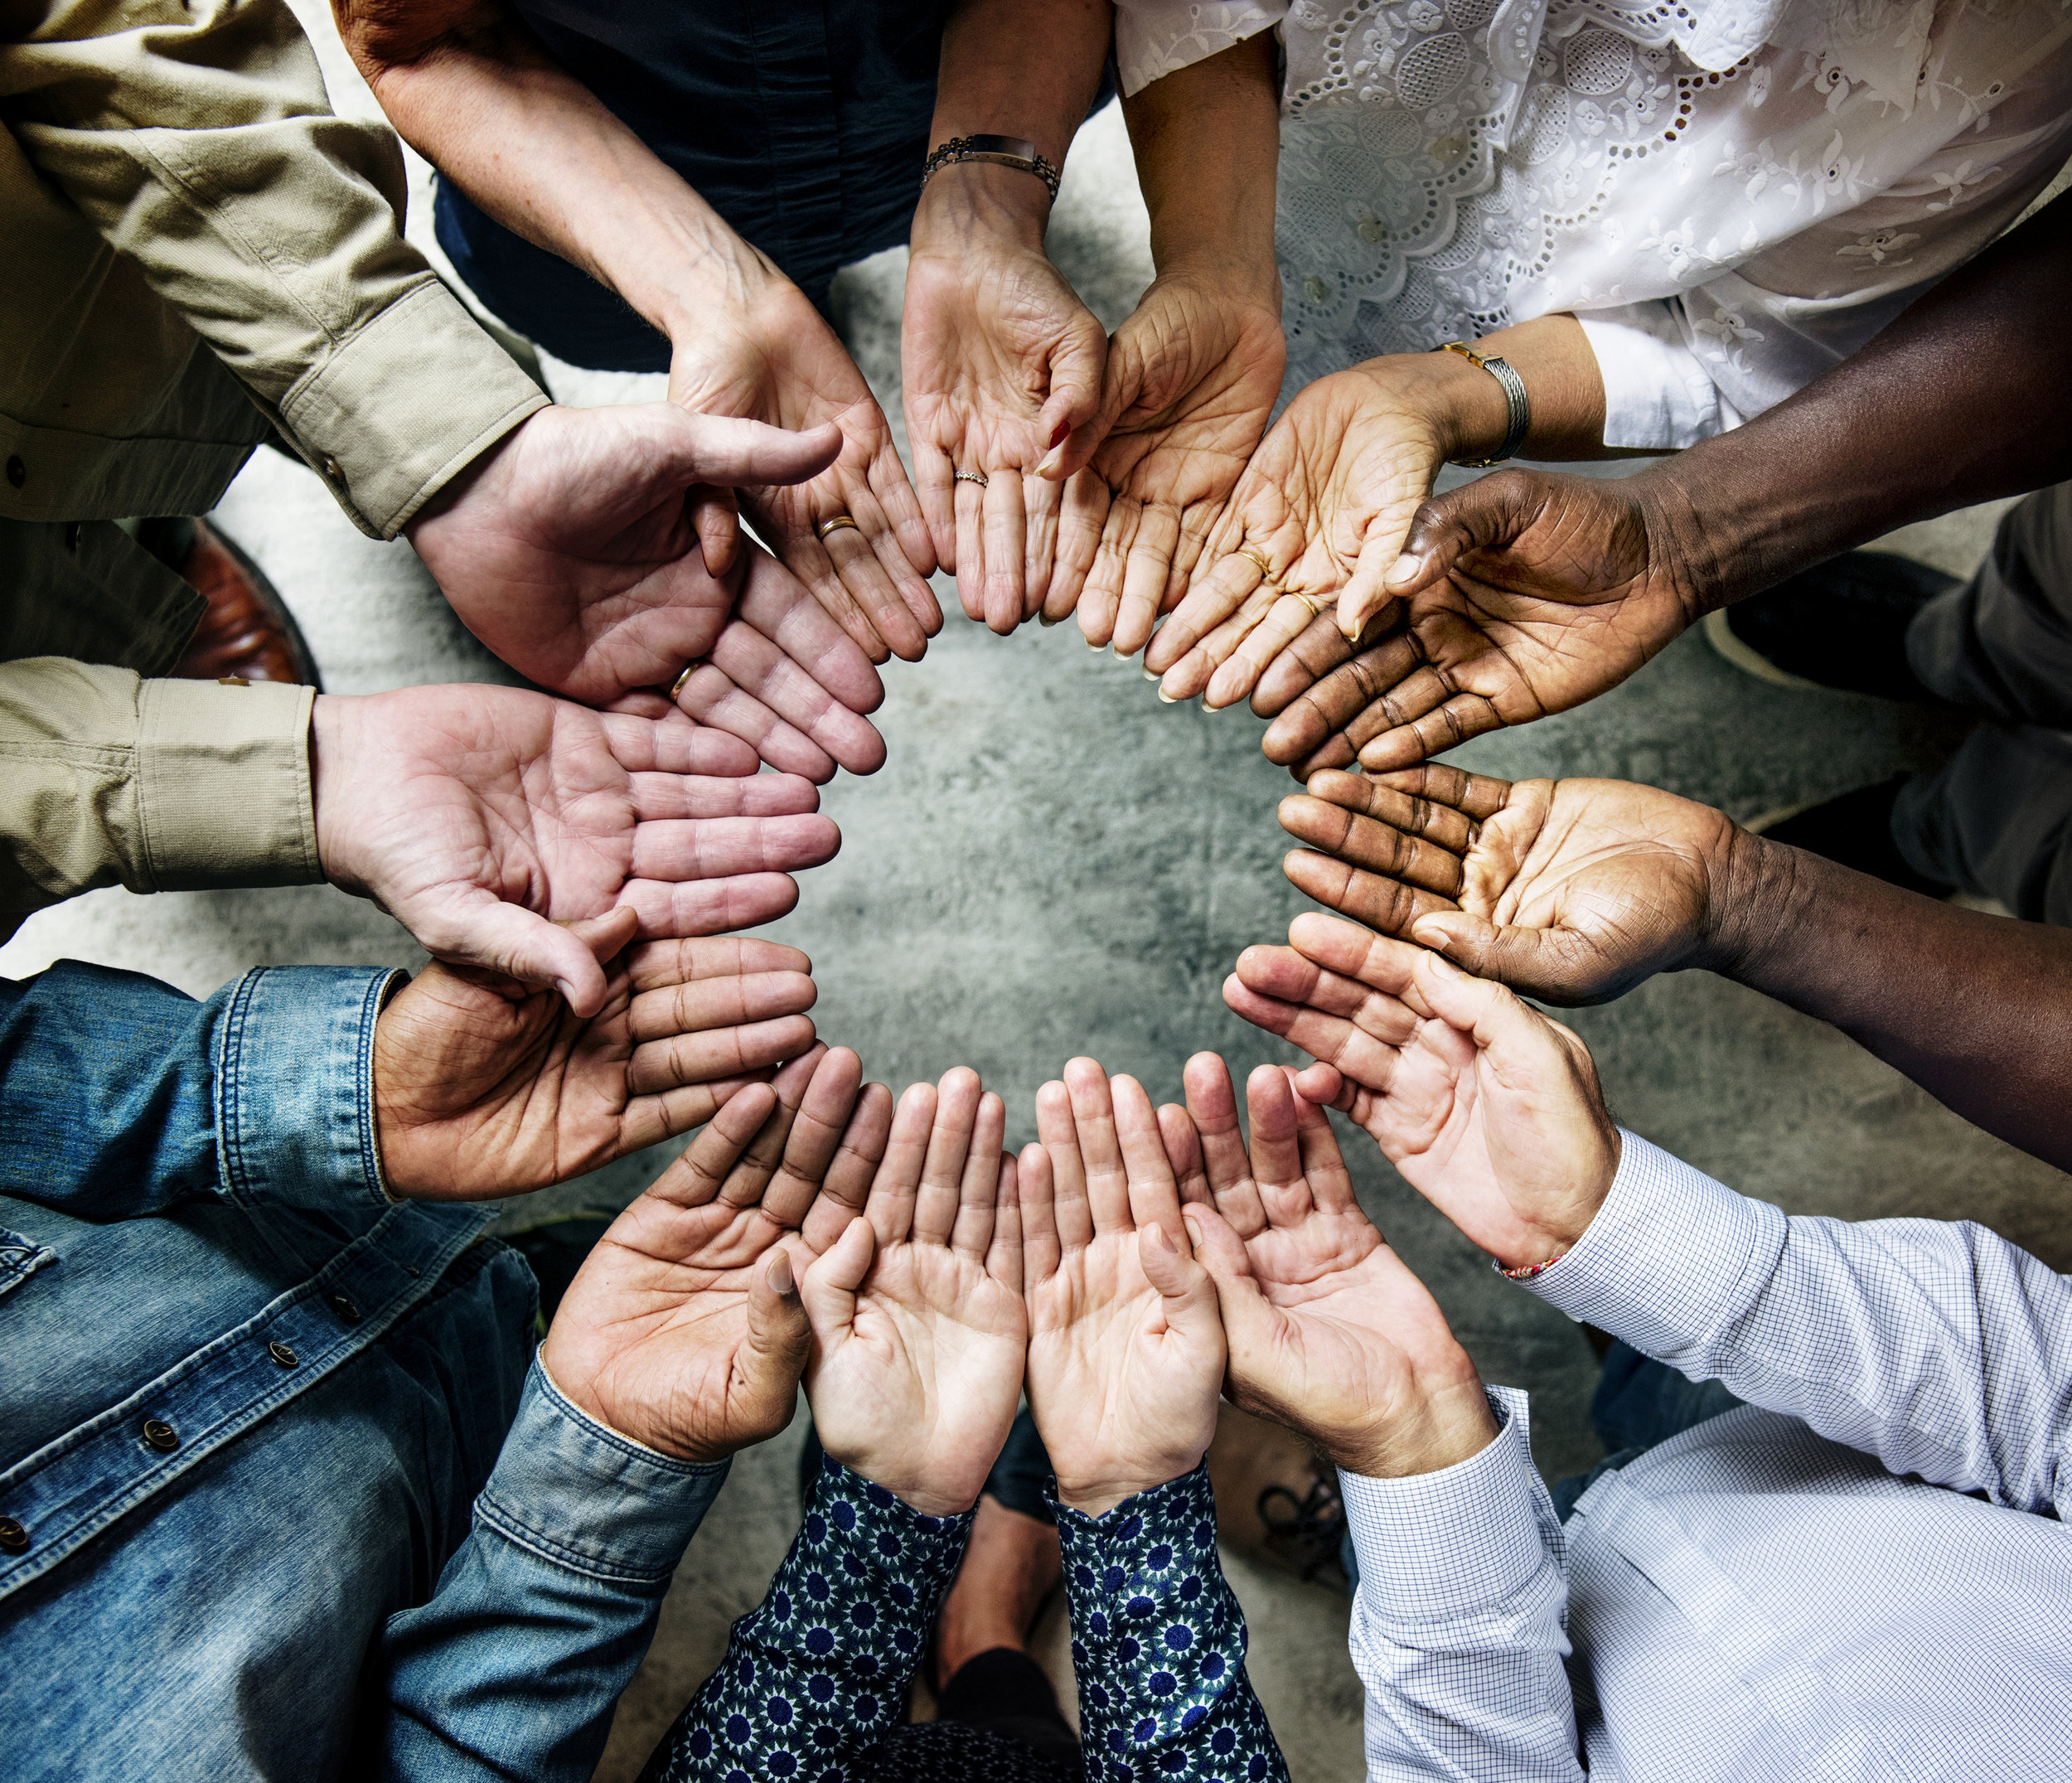 calvary church formation hands in circle istock.jpg